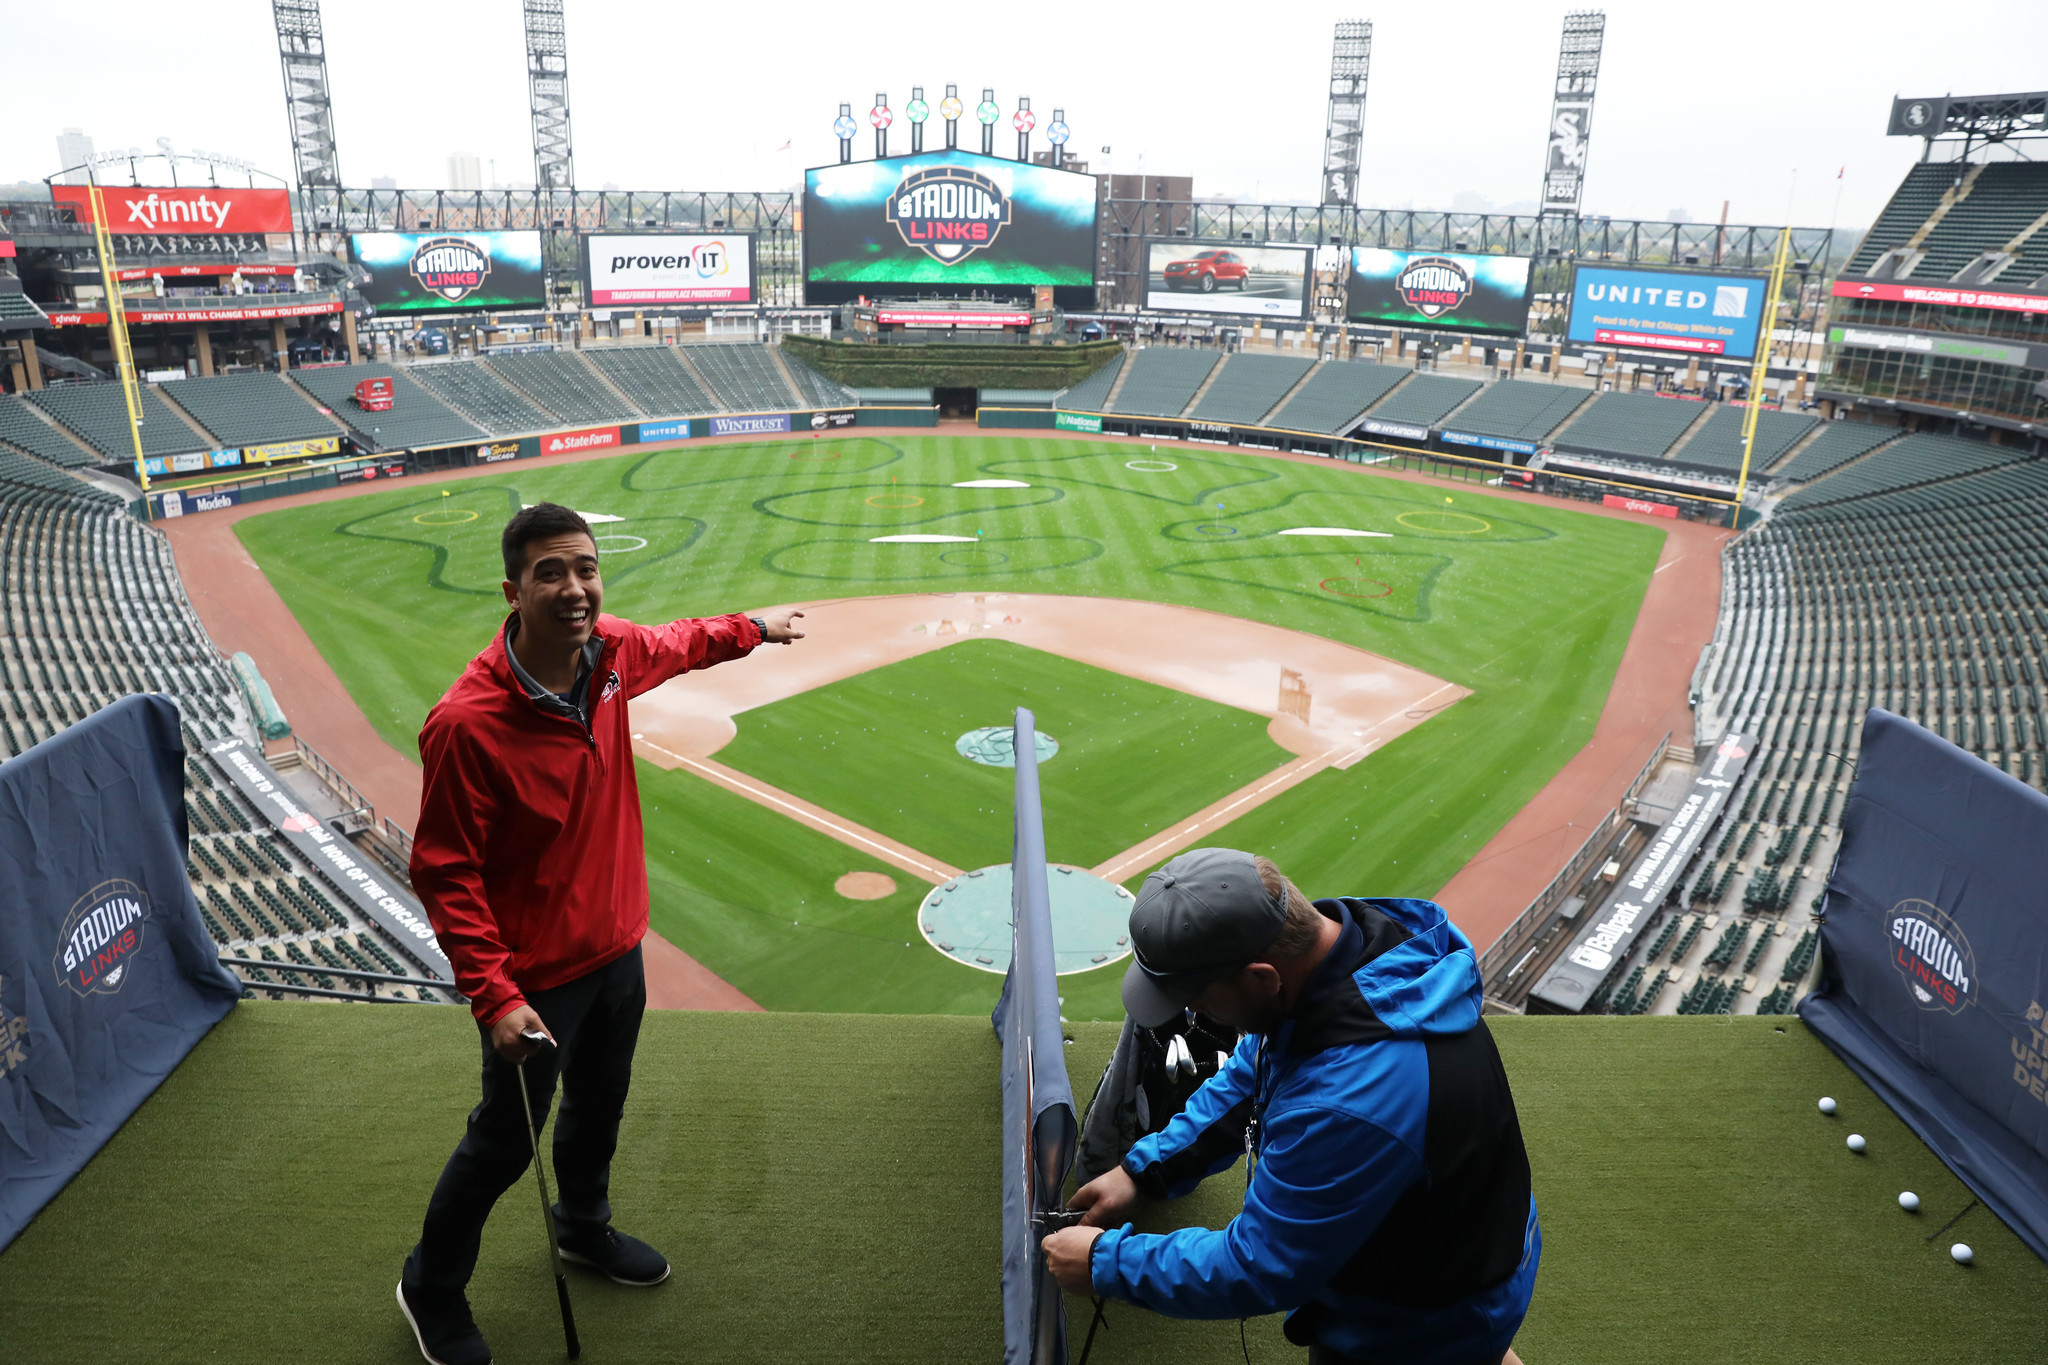 If you're headed to White Sox Park this weekend, bring your 9-iron